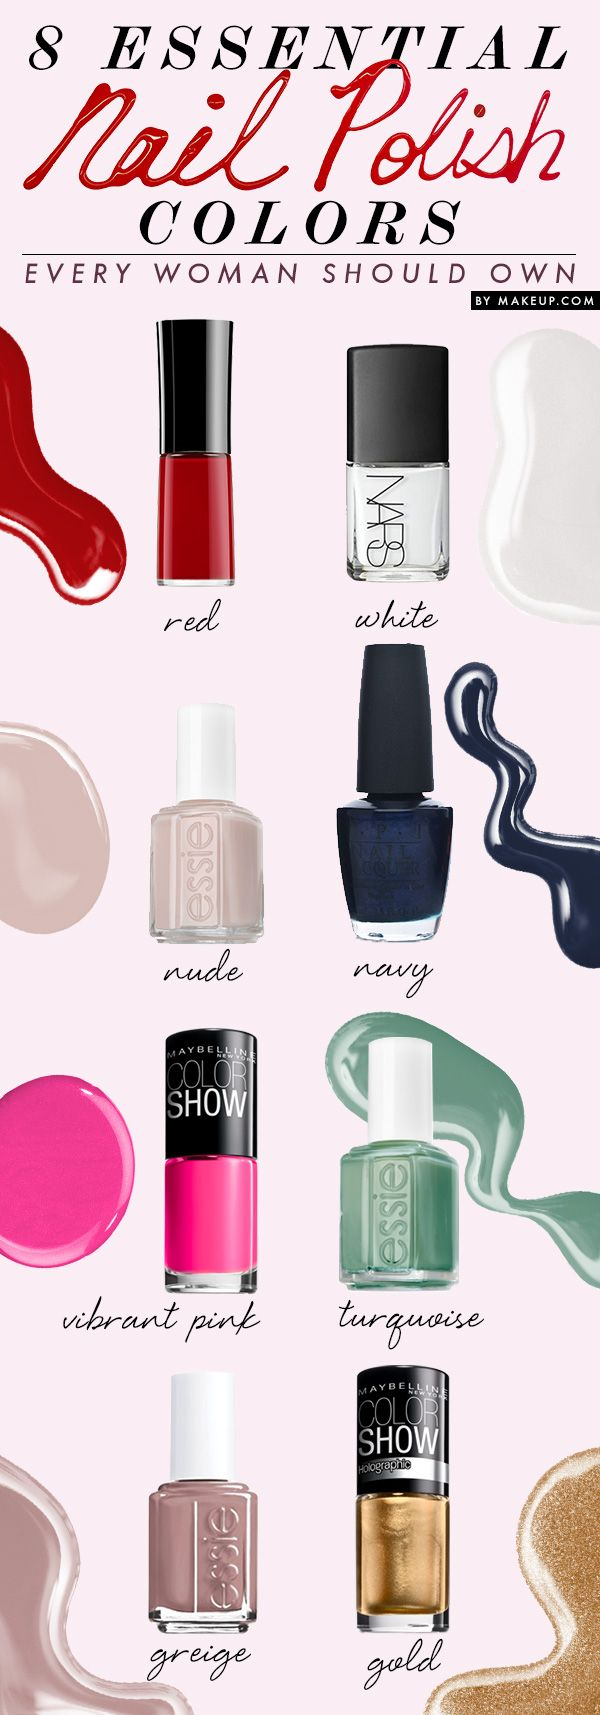 8 nail polish colors every woman needs // just another excuse to buy more polish!